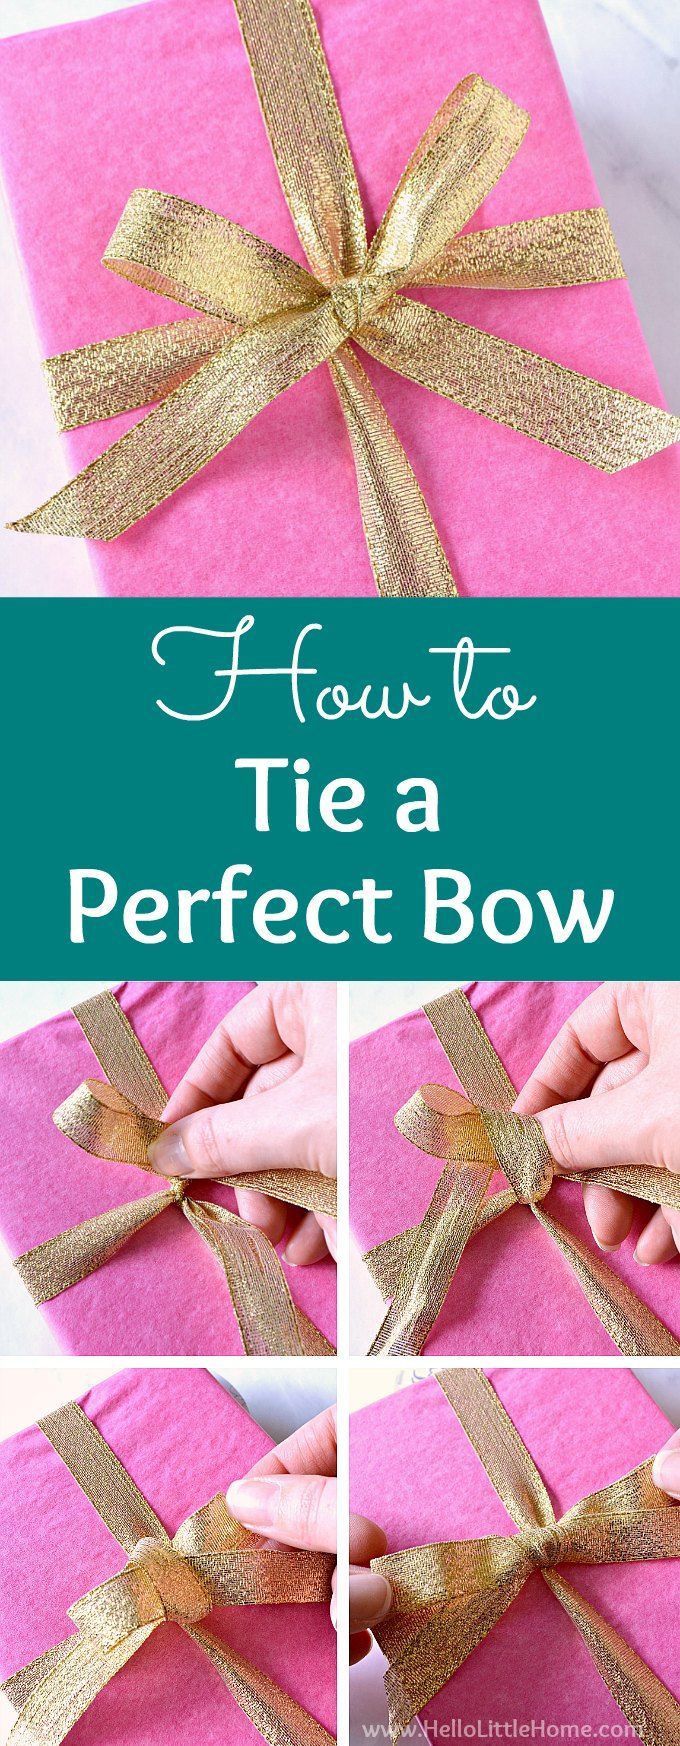 Uncategorized Tying Ribbon 25 unique how to tie ribbon ideas on pinterest gift bow a perfect step by tutorial with video learn for gifts wreaths hair